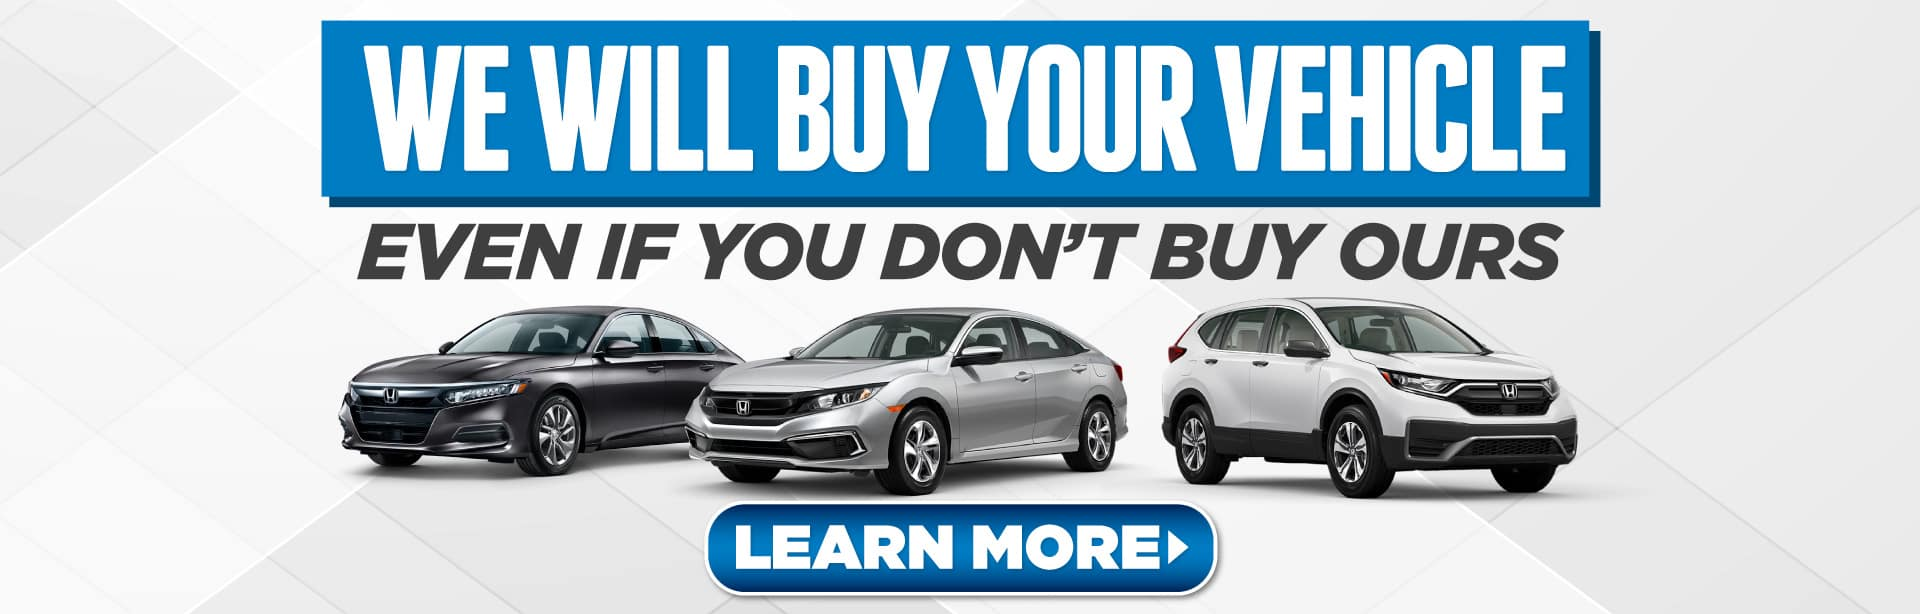 We Will Buy Your Vehicle Even if You Don't Buy Ours - Value Your Vehicle Now